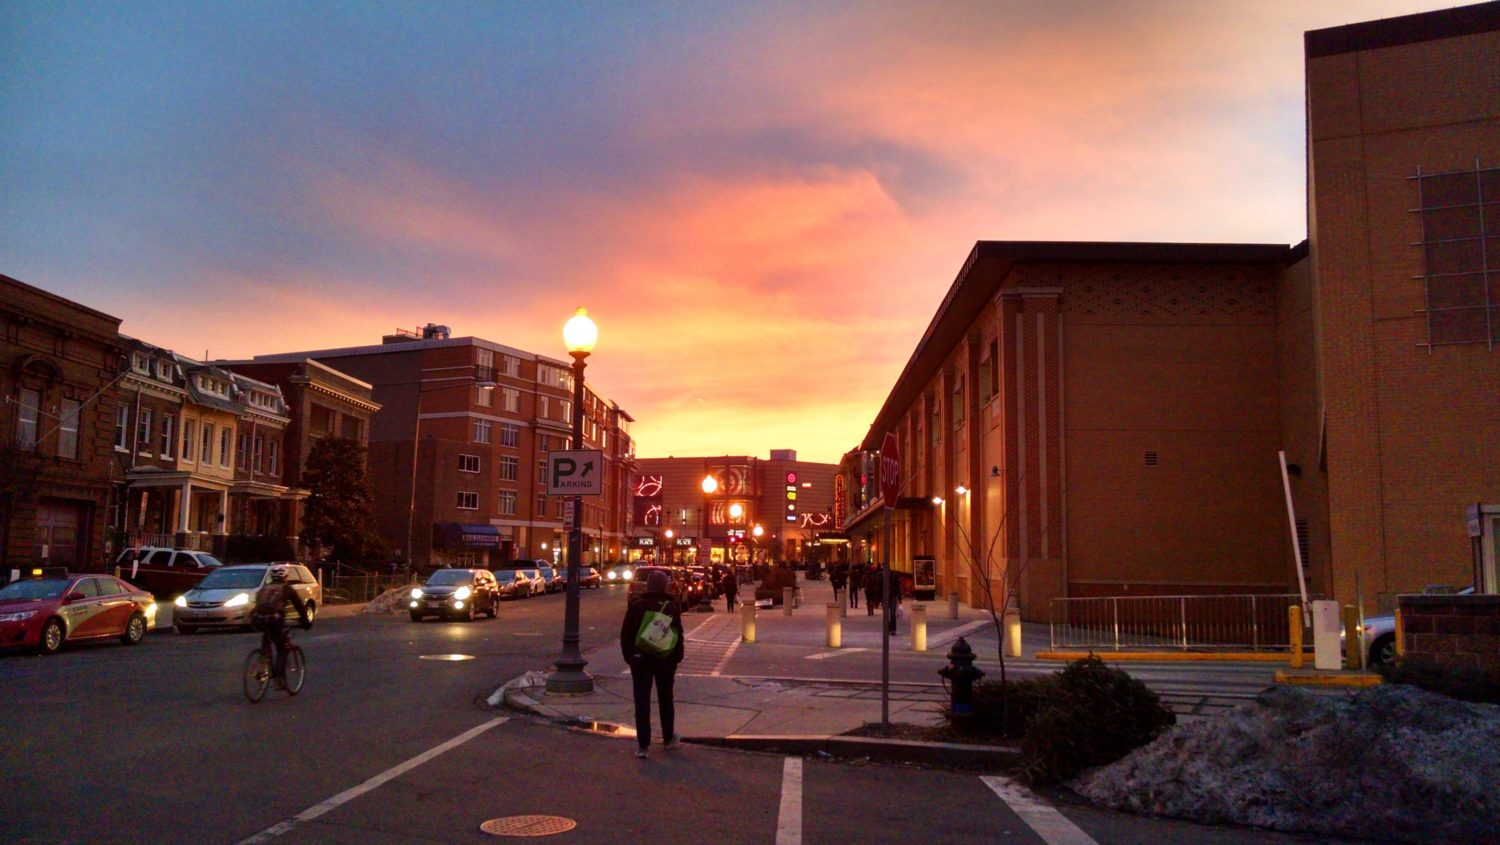 D.C. Residents Heard A Loud Boom In Northwest Last Night. The City